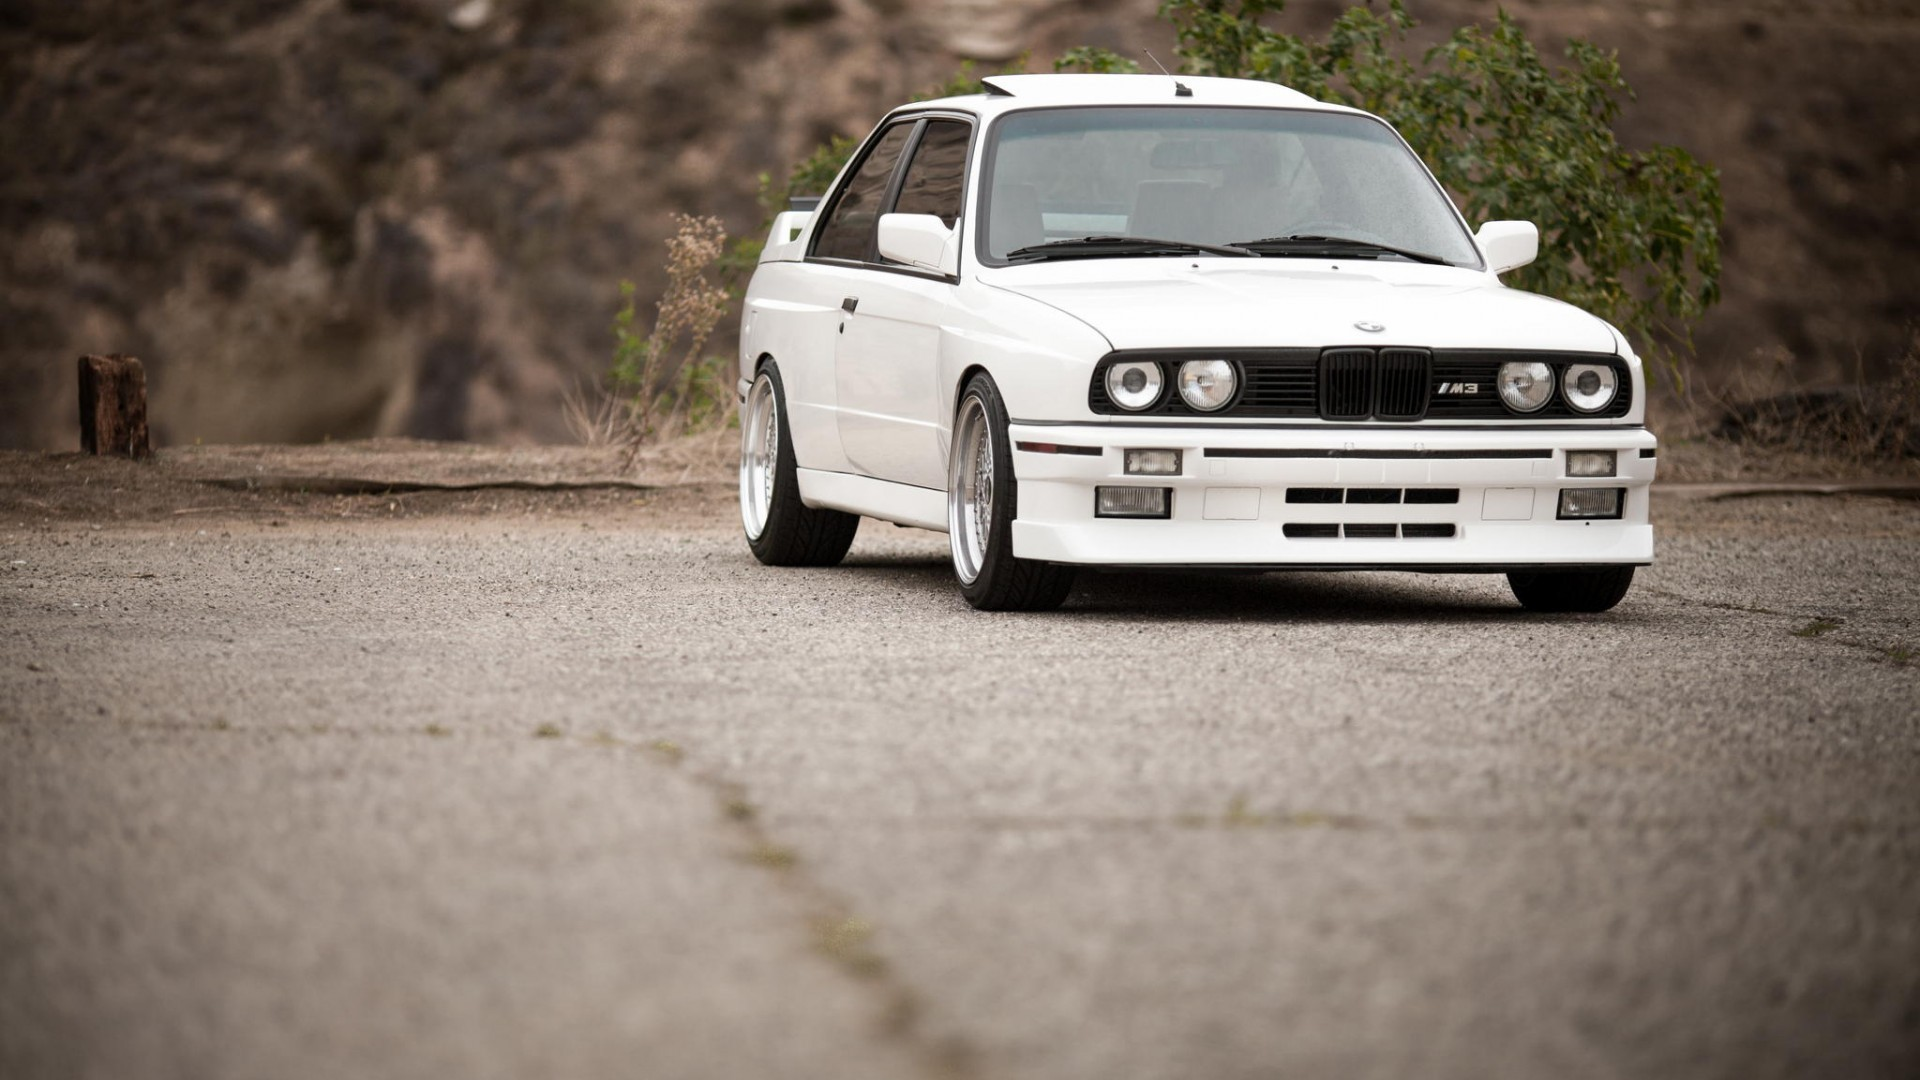 car, BMW, BMW M3, BMW E30 Wallpapers HD / Desktop and Mobile Backgrounds